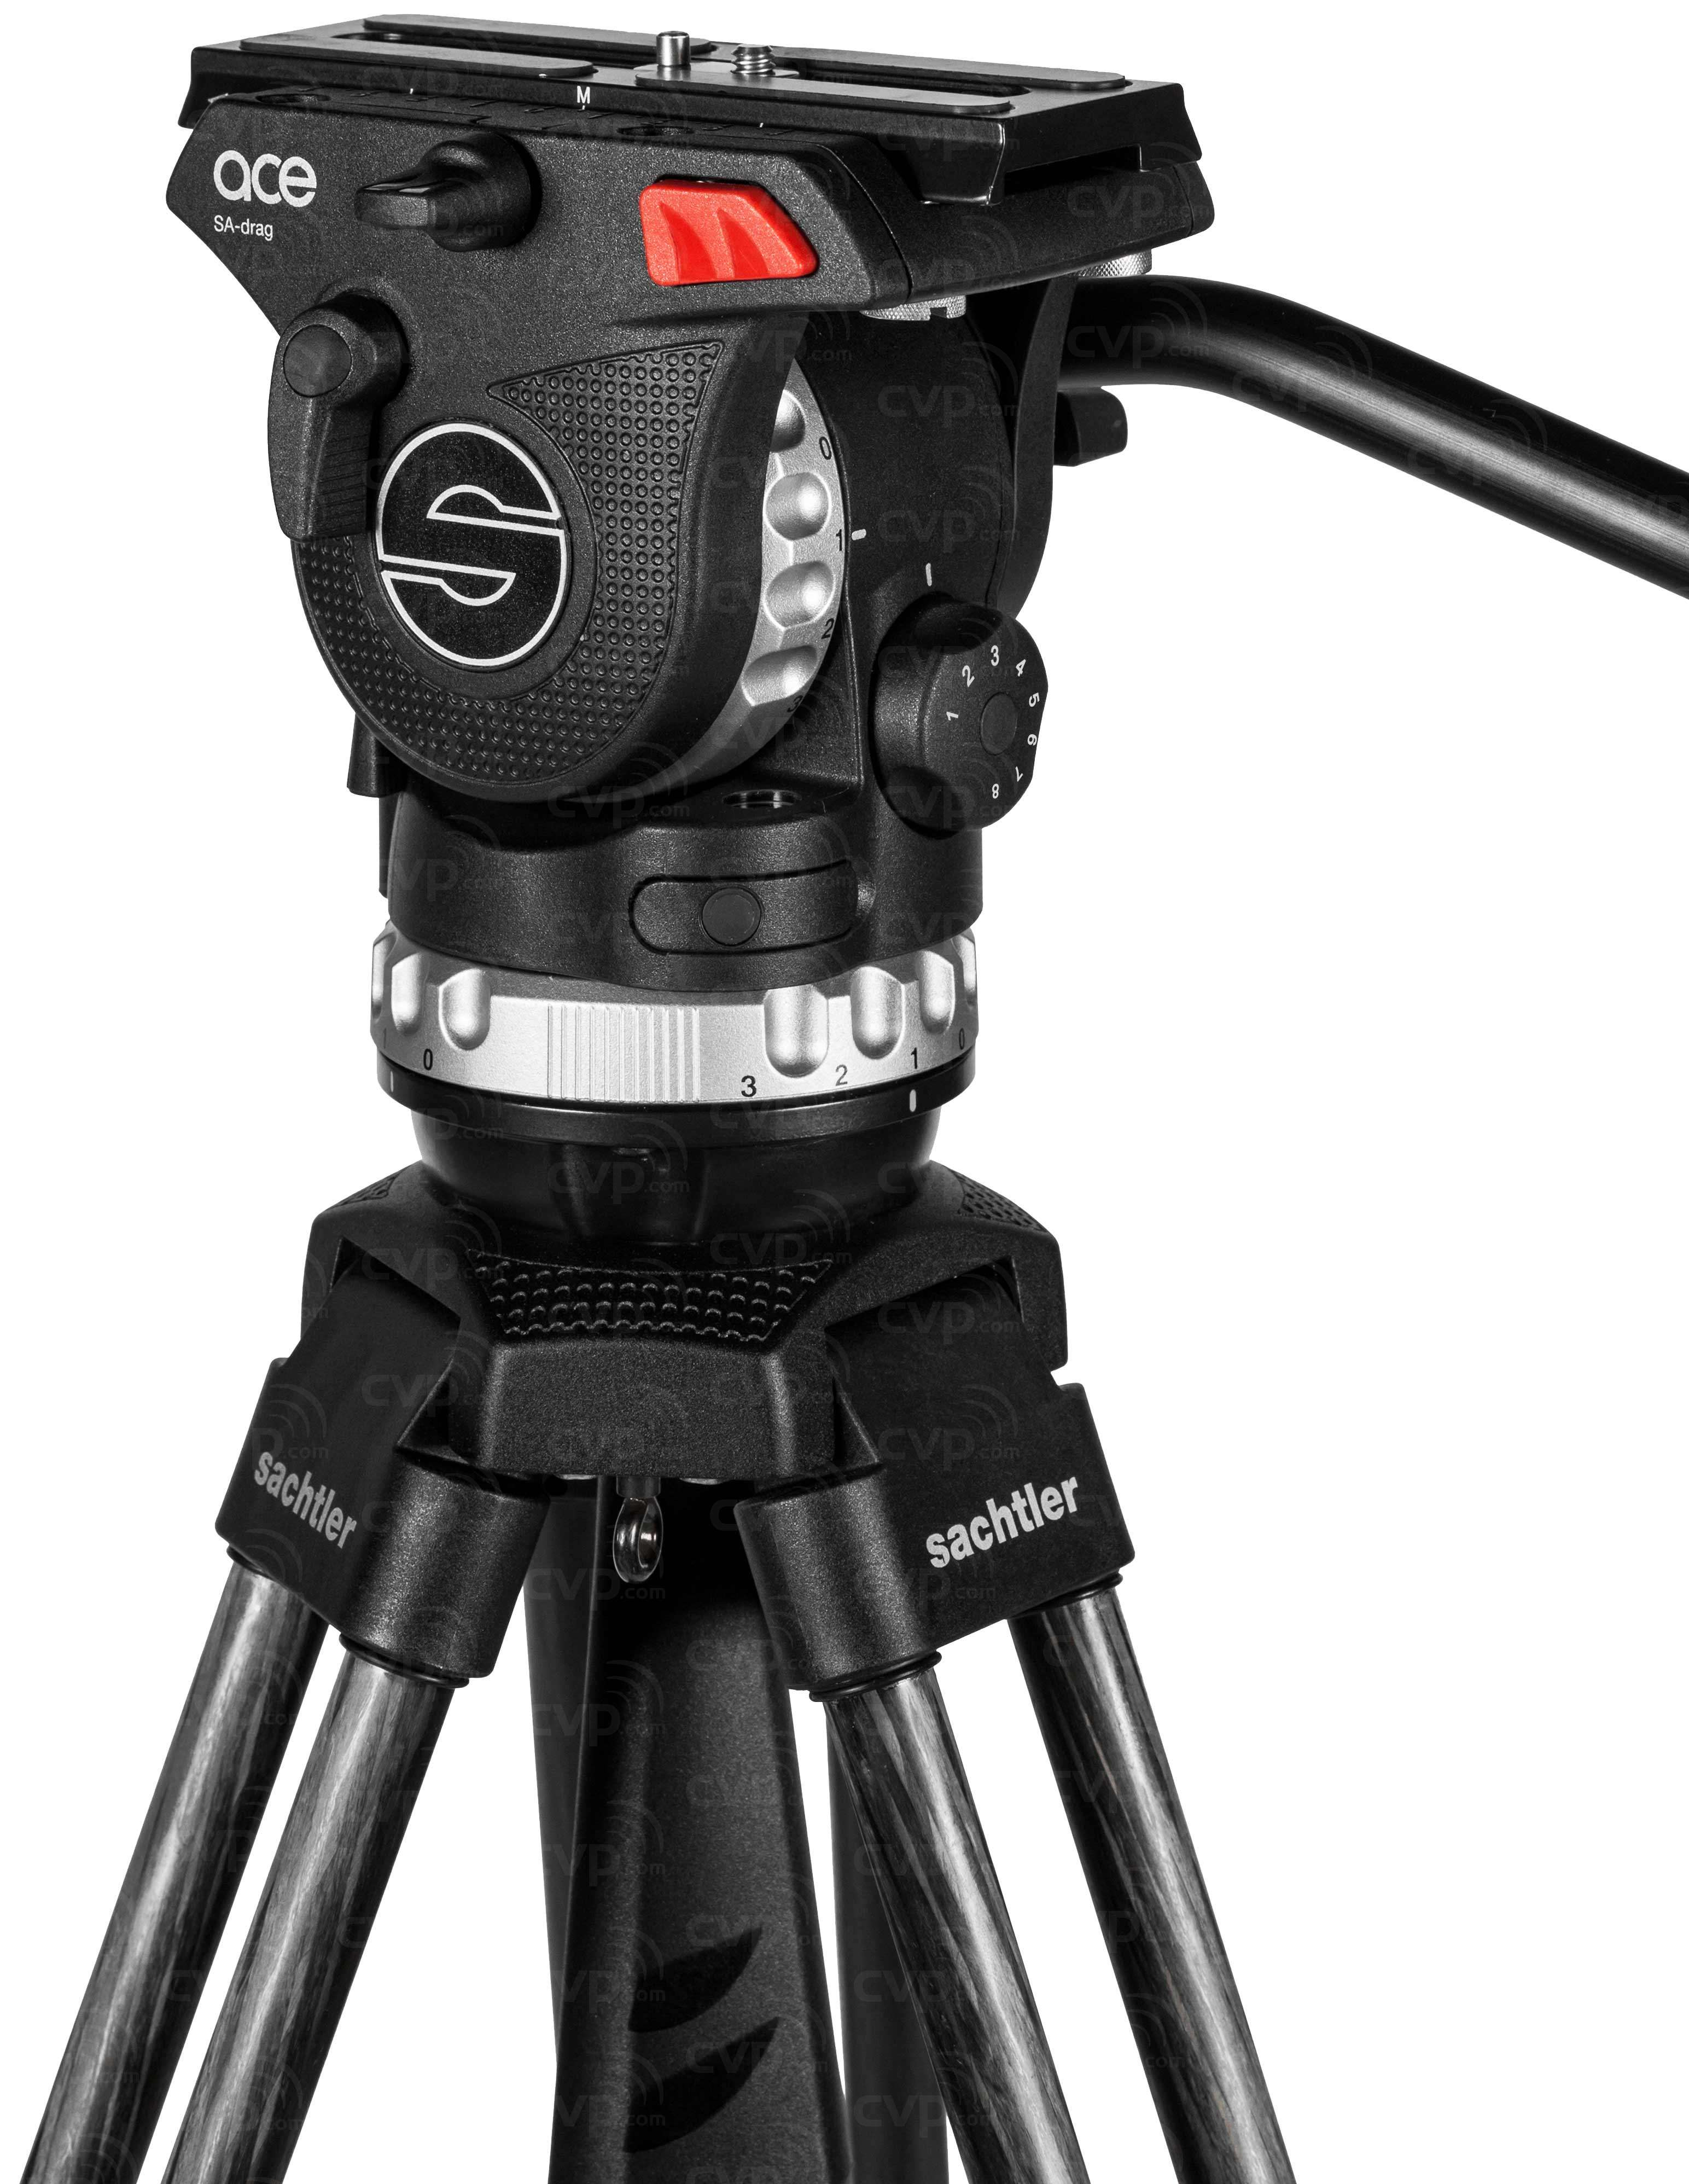 Sachtler 8677 Ace Carrying Strap for Ace M Ace L Systems